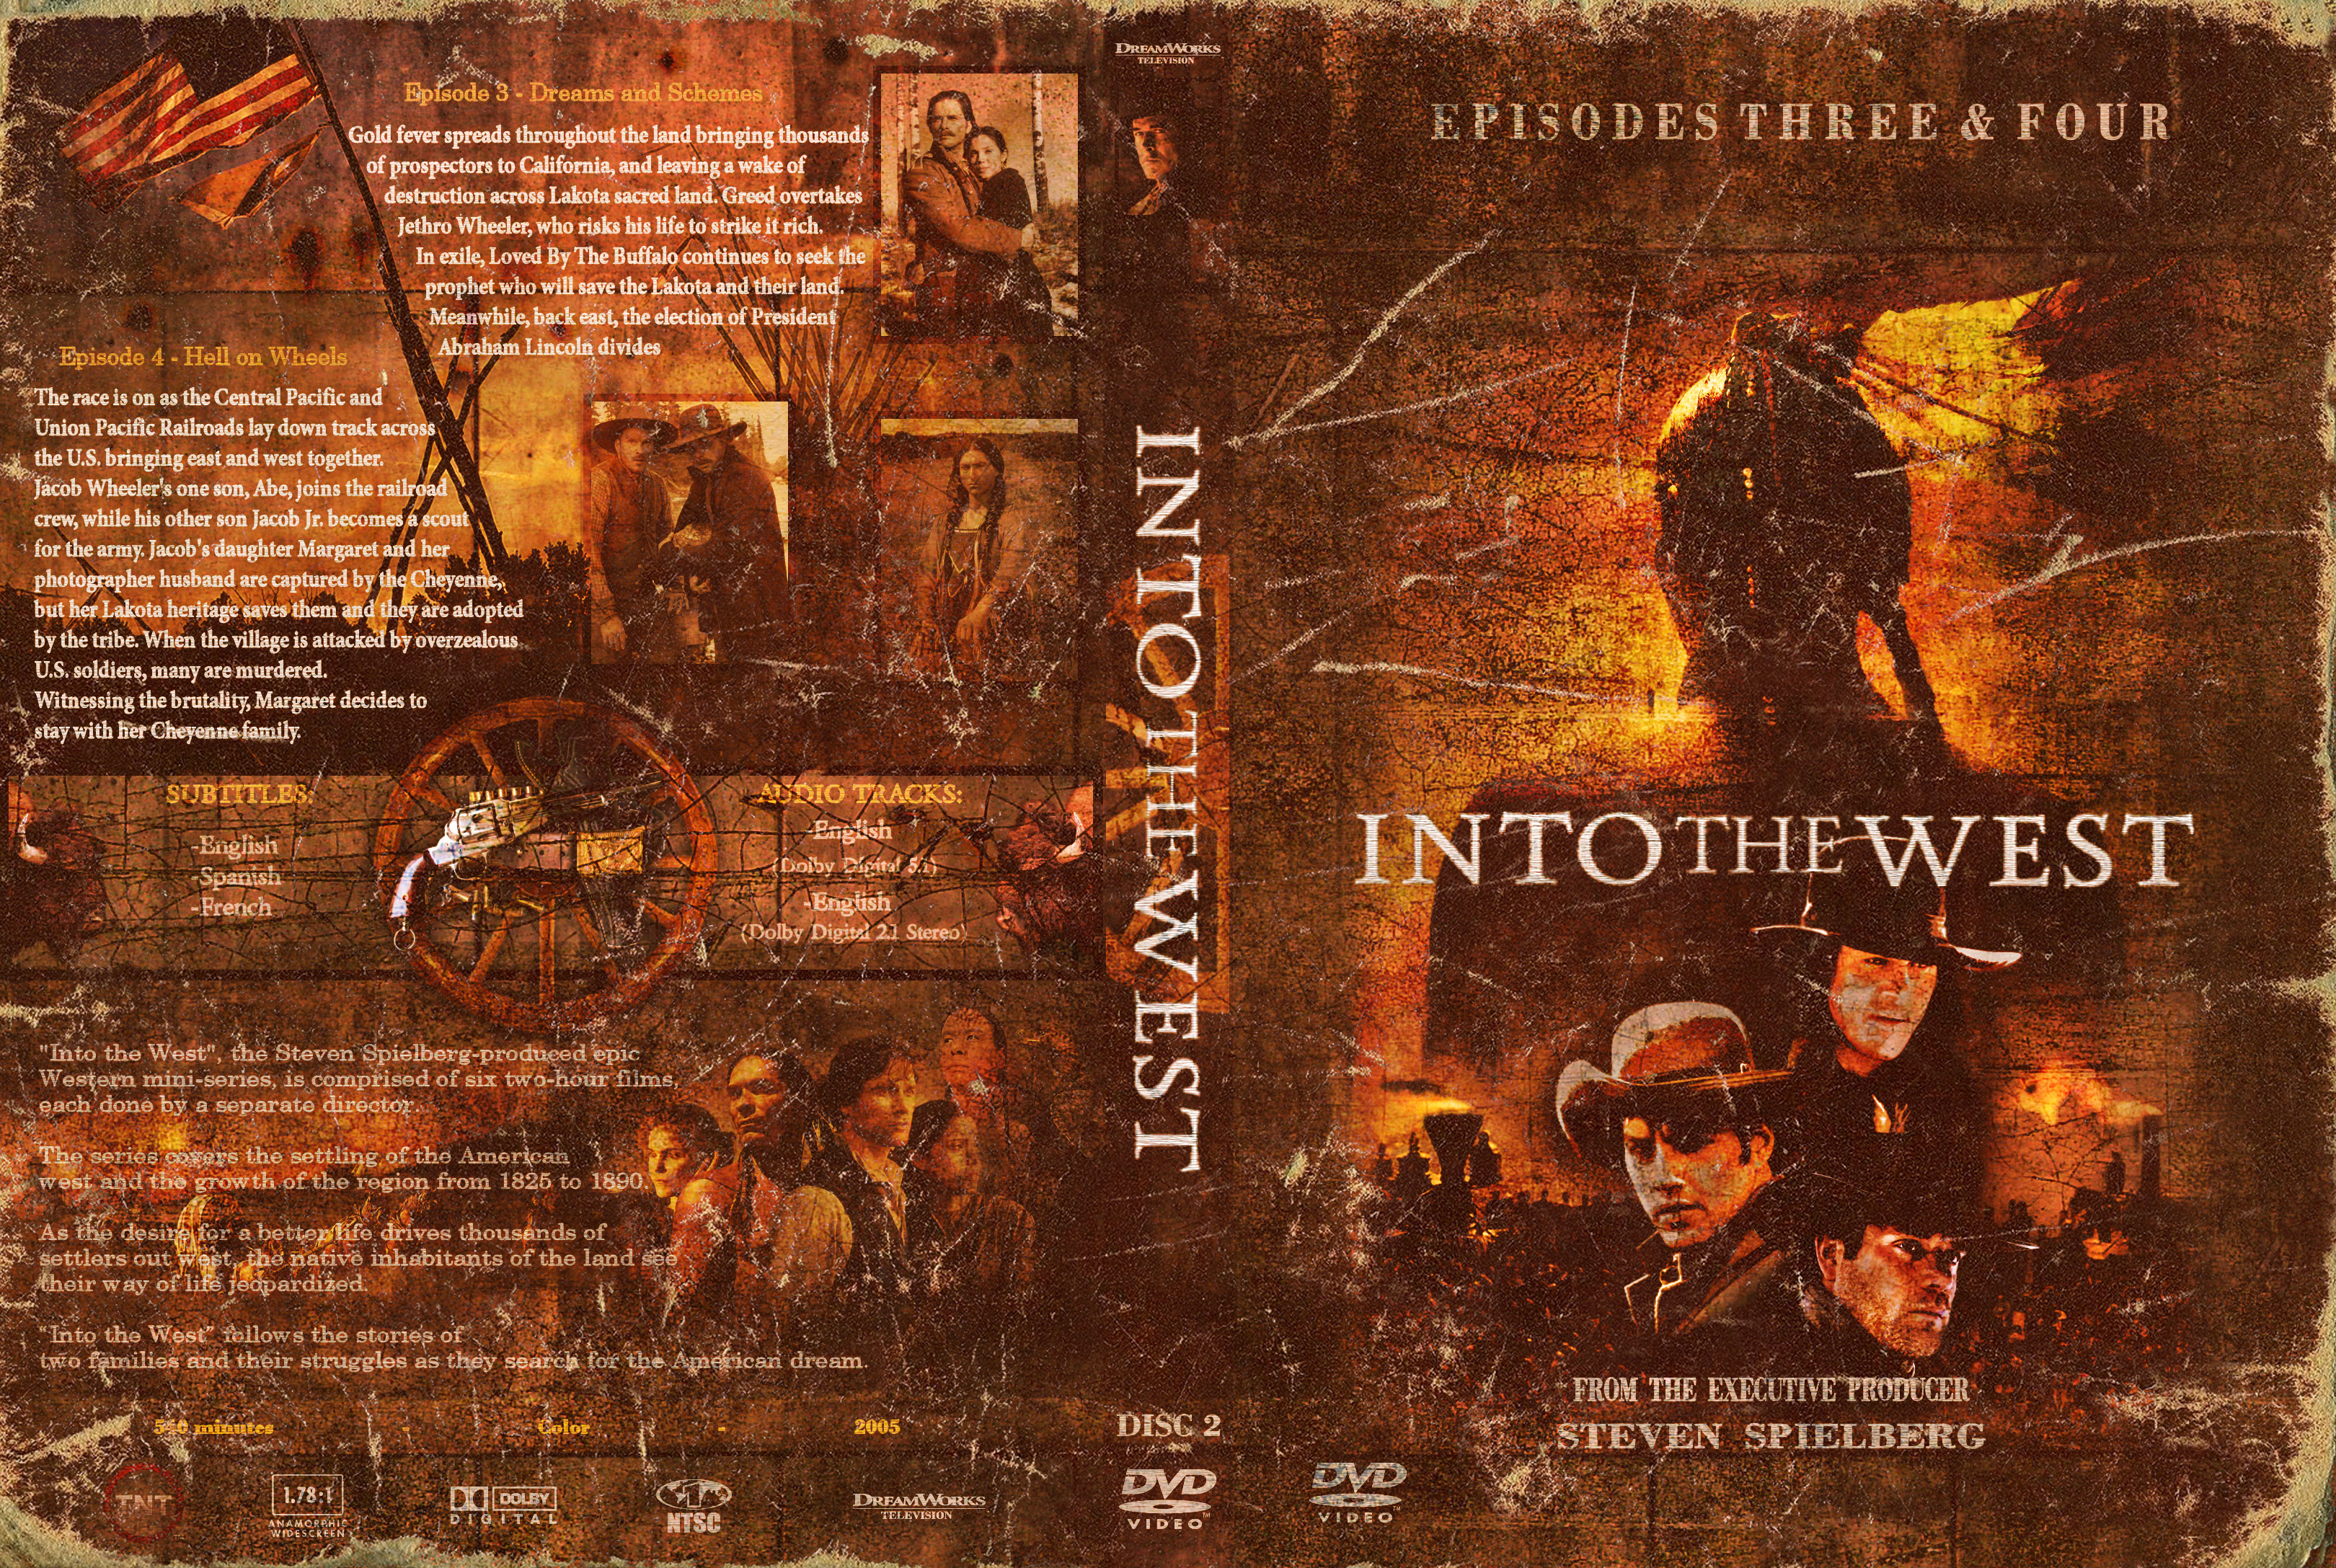 Into the west - dvd 2